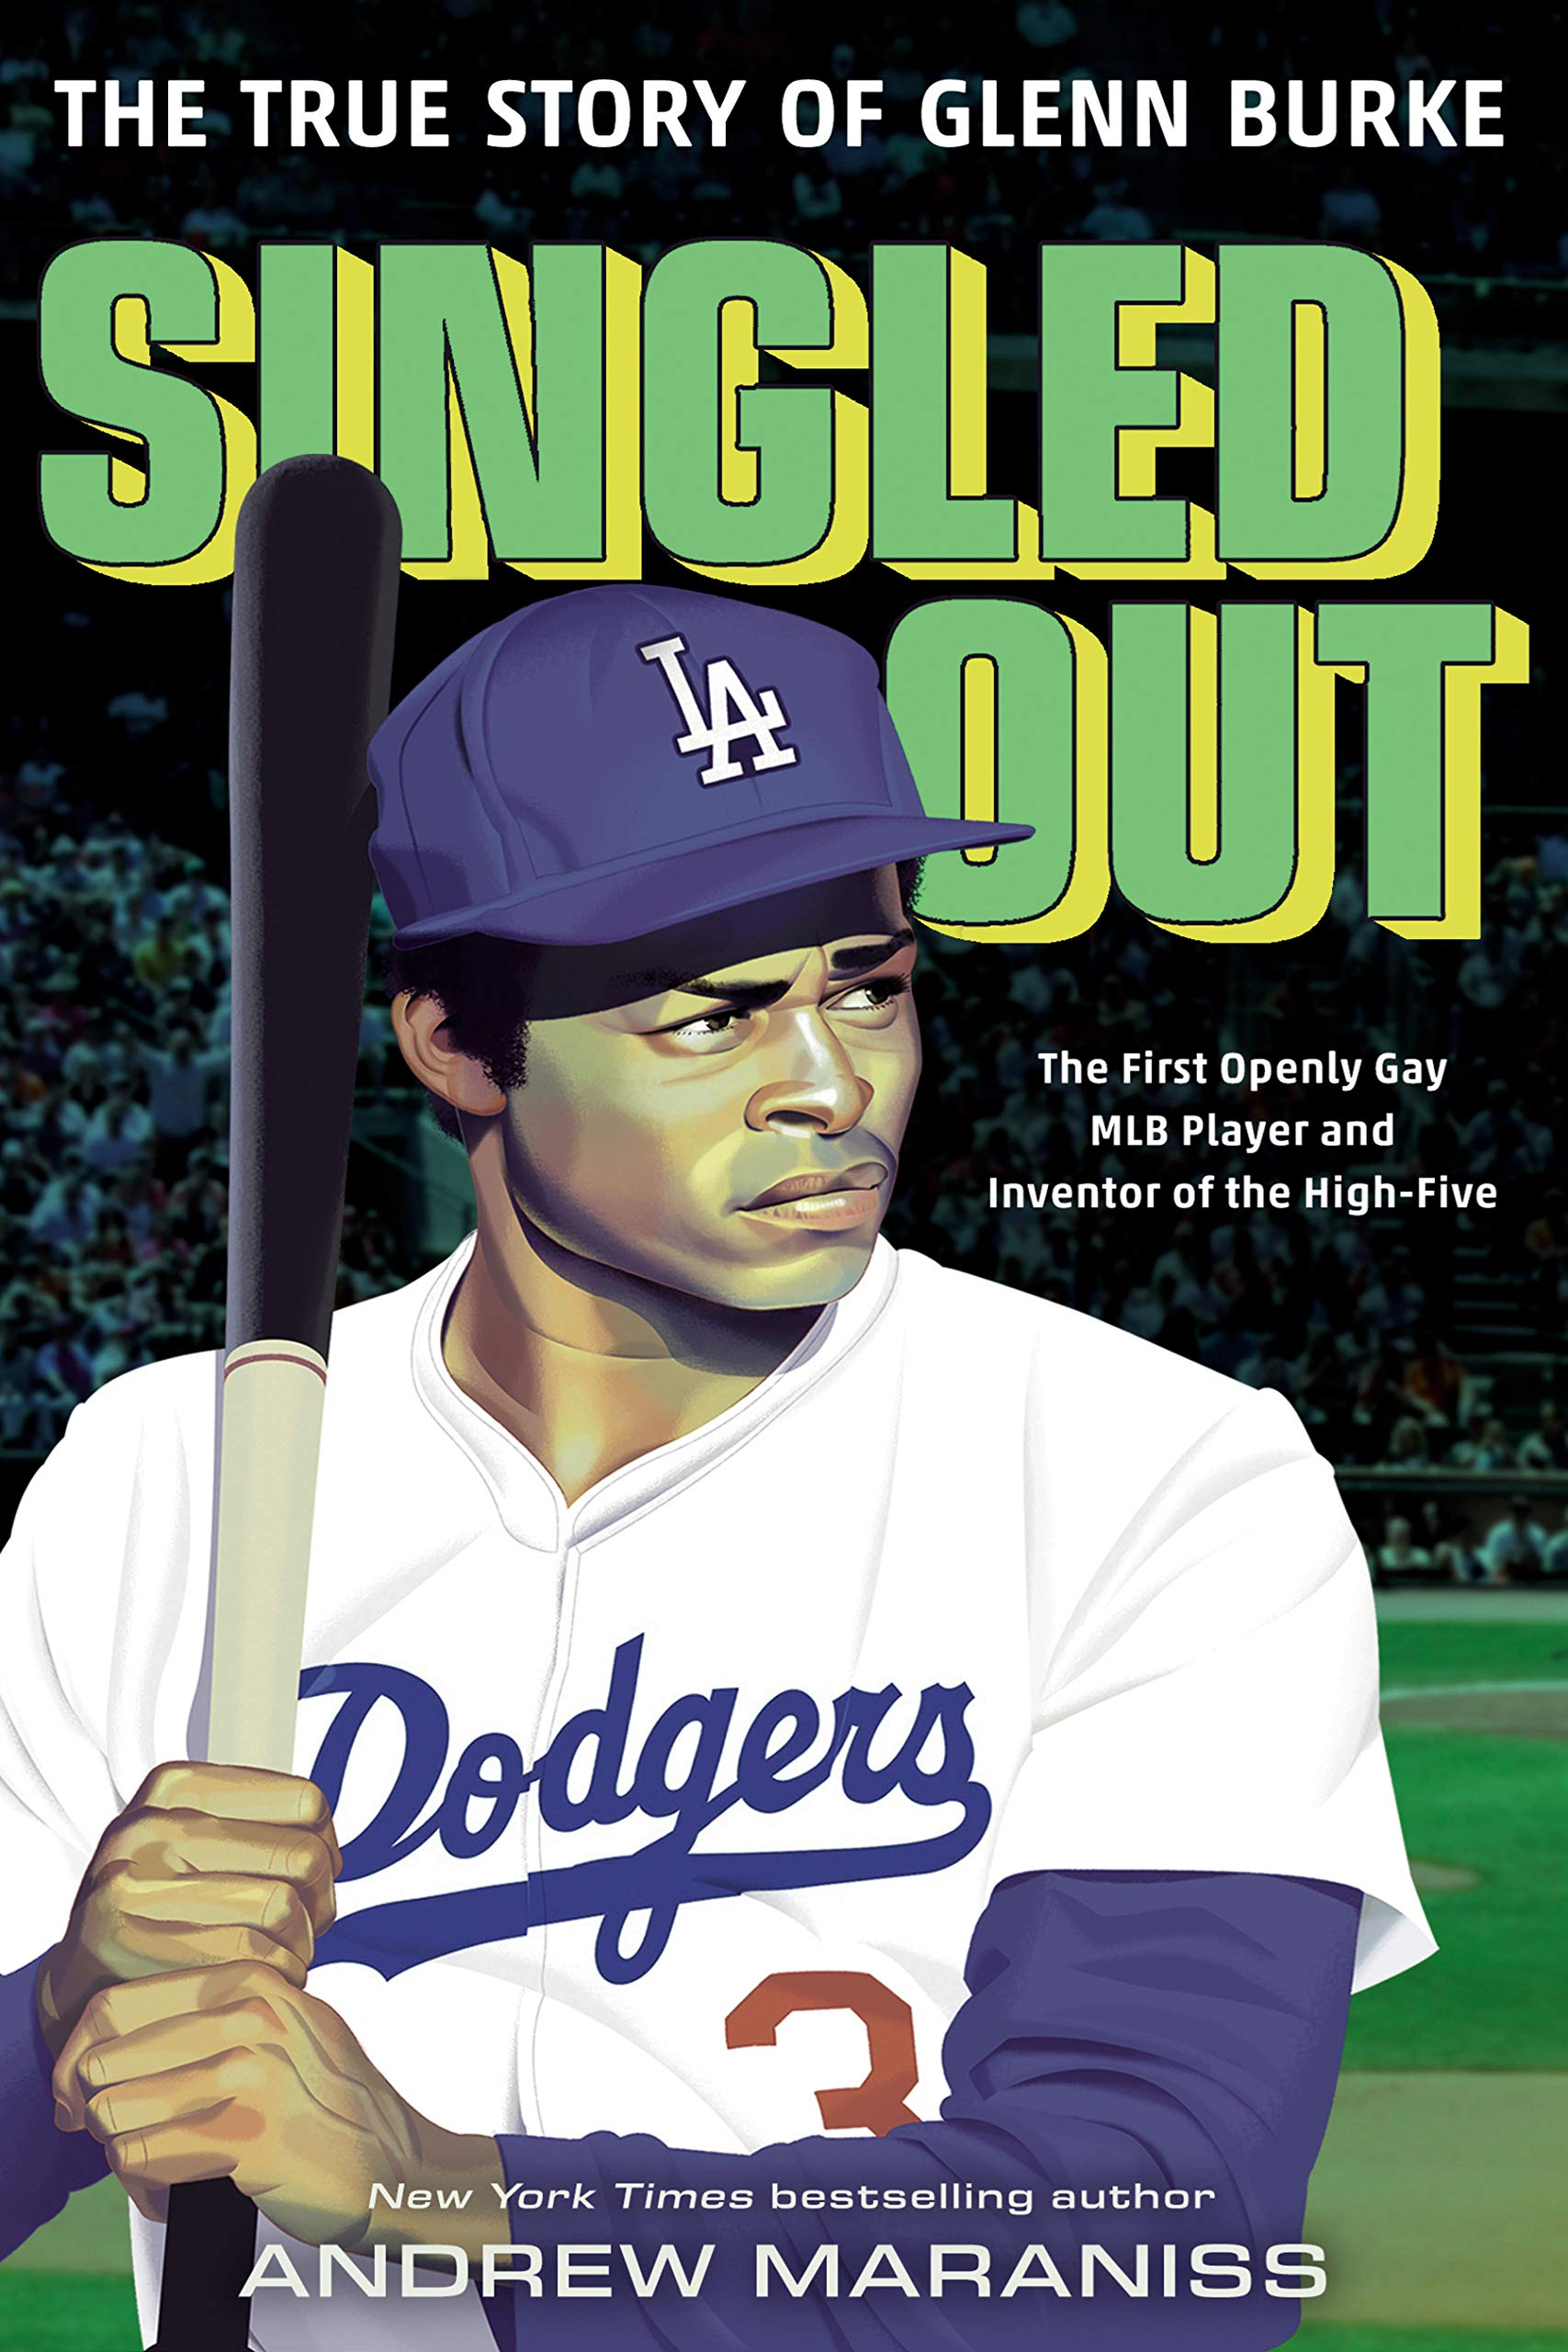 Amazon.com: Singled Out: The True Story of Glenn Burke (9780593116722):  Maraniss, Andrew: Books